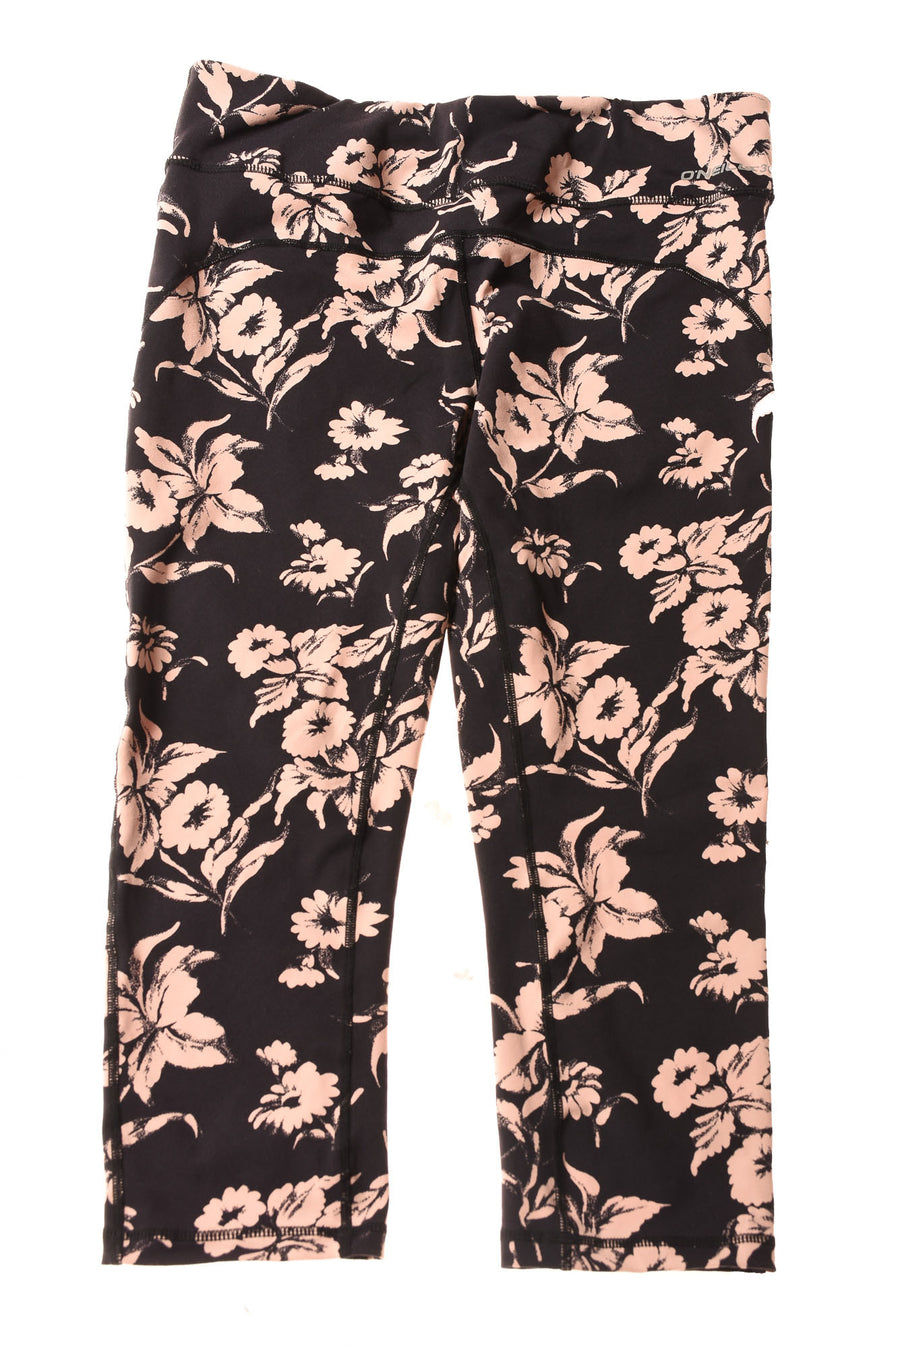 USED Oniel 365 Women's Yoga Pants Large Black & Peach / Floral